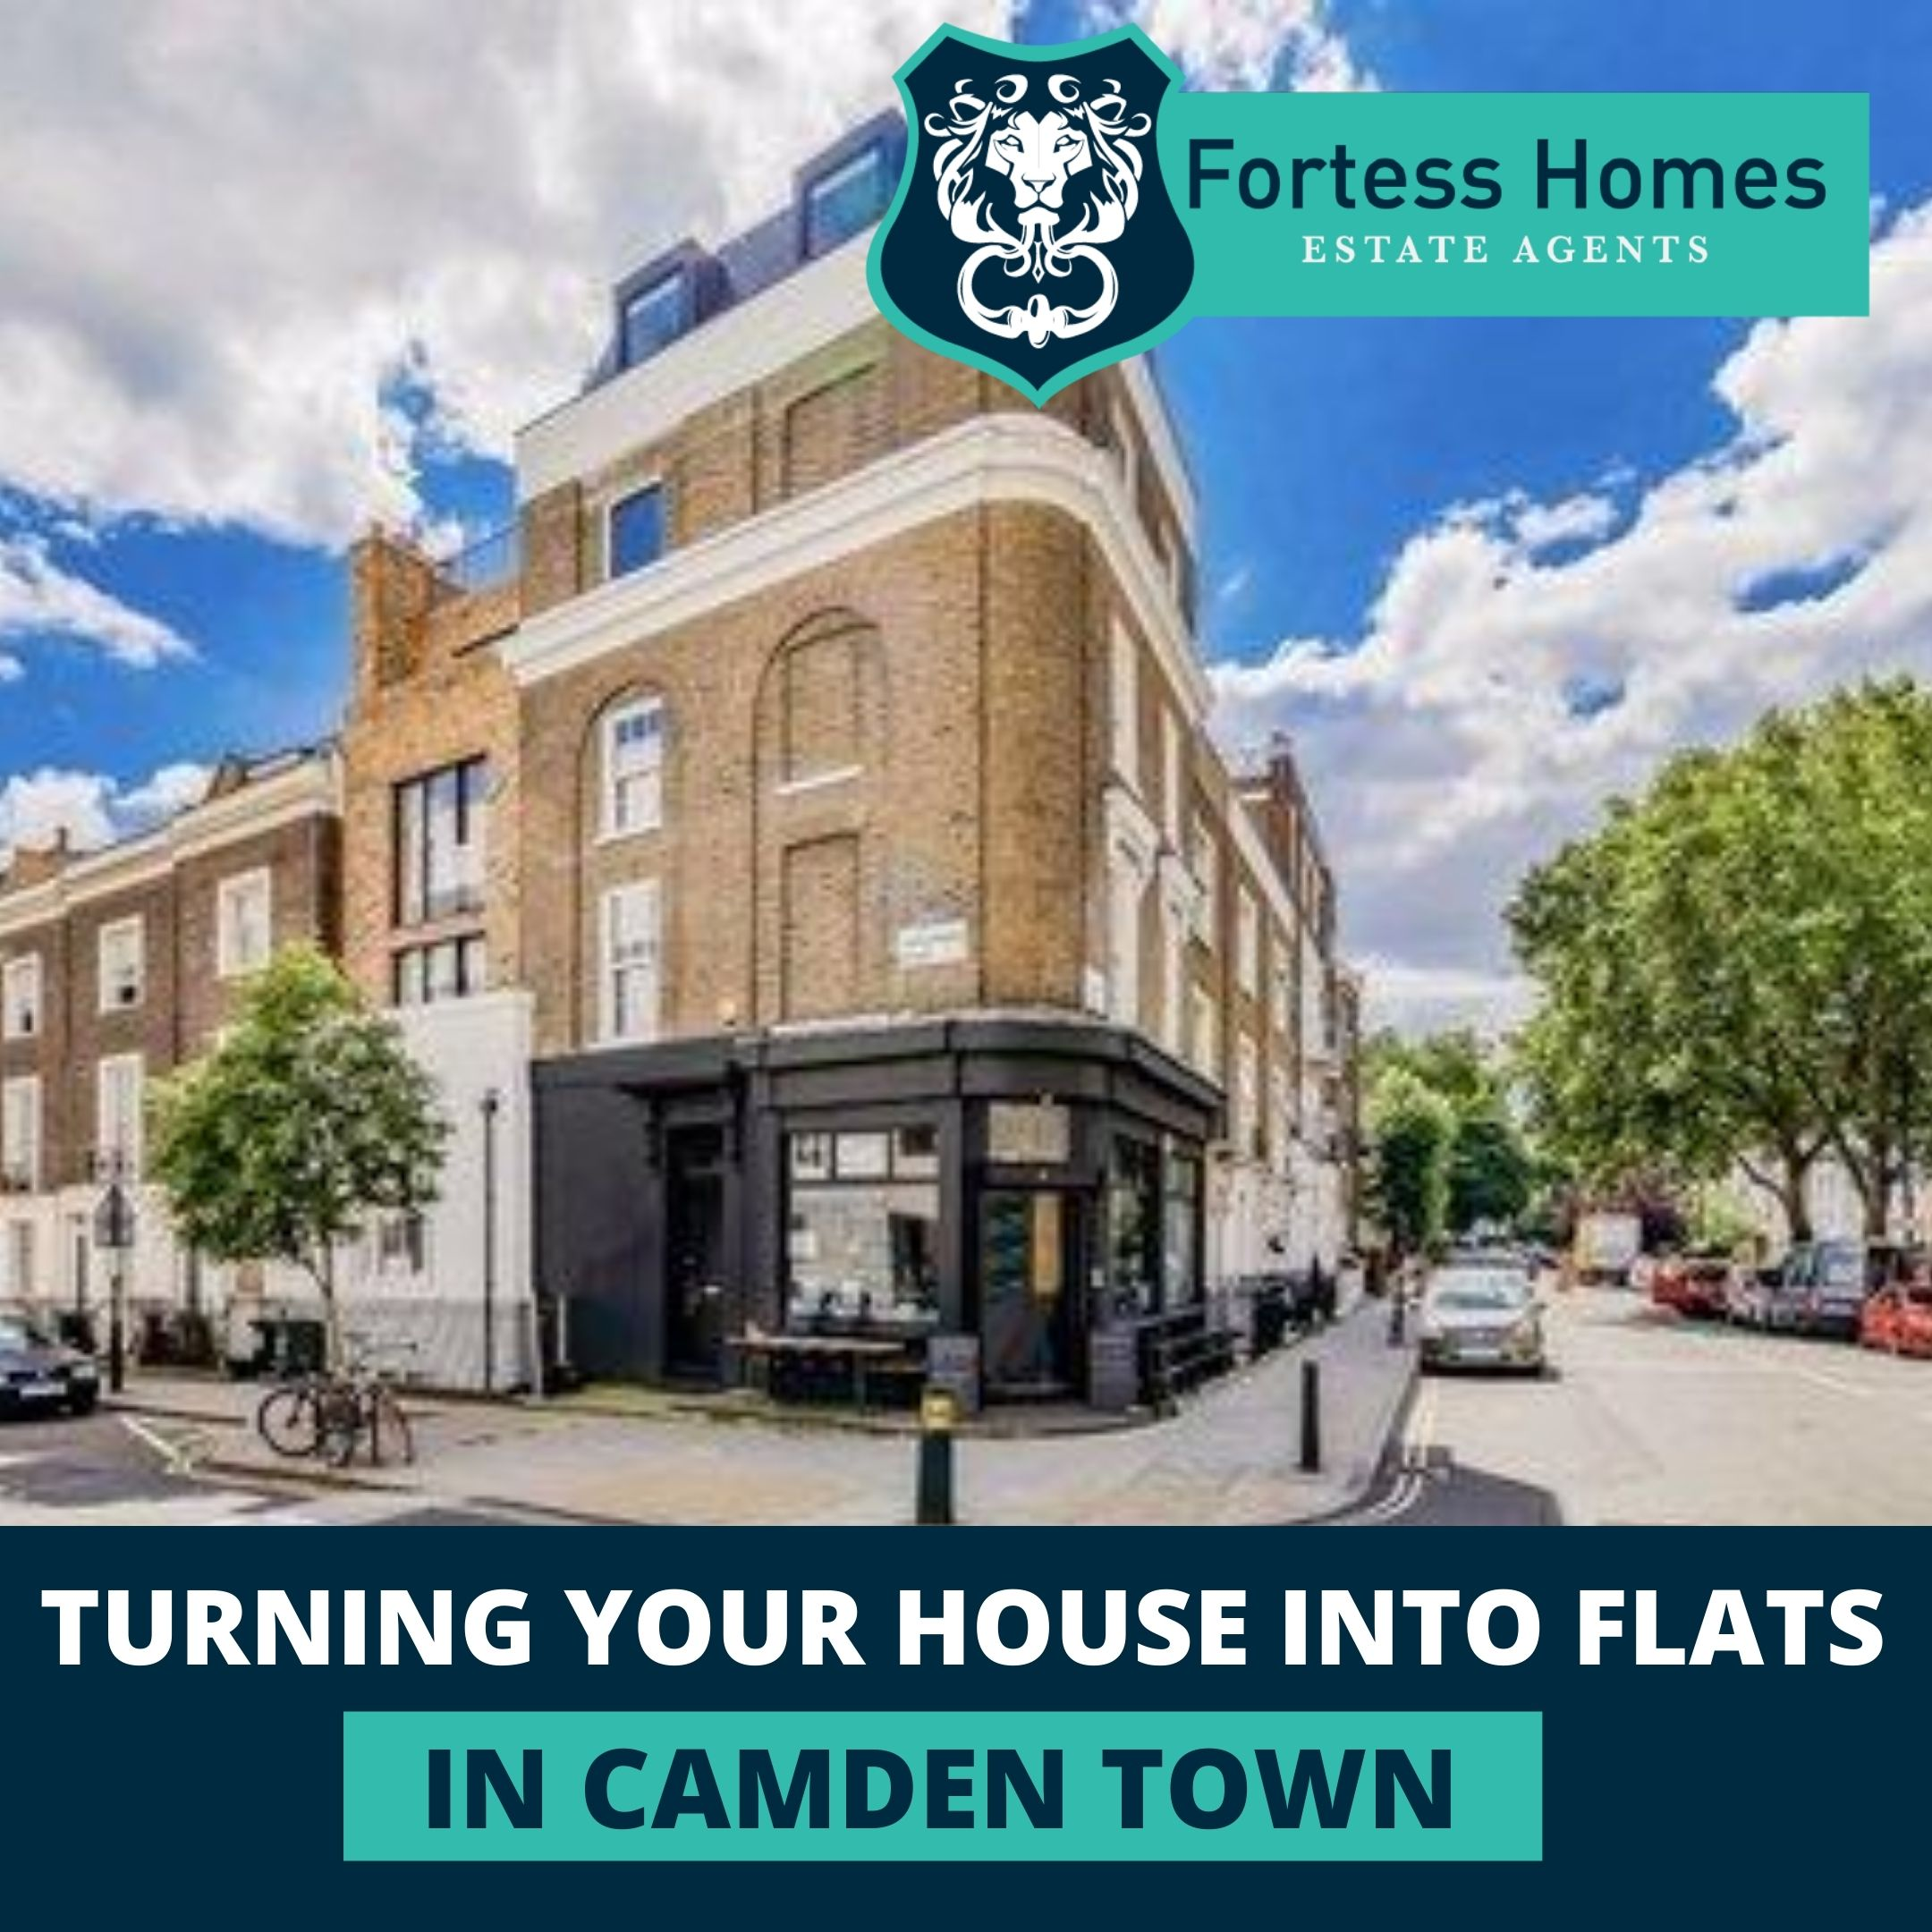 TURNING YOUR HOUSE INTO FLATS IN CAMDEN TOWN